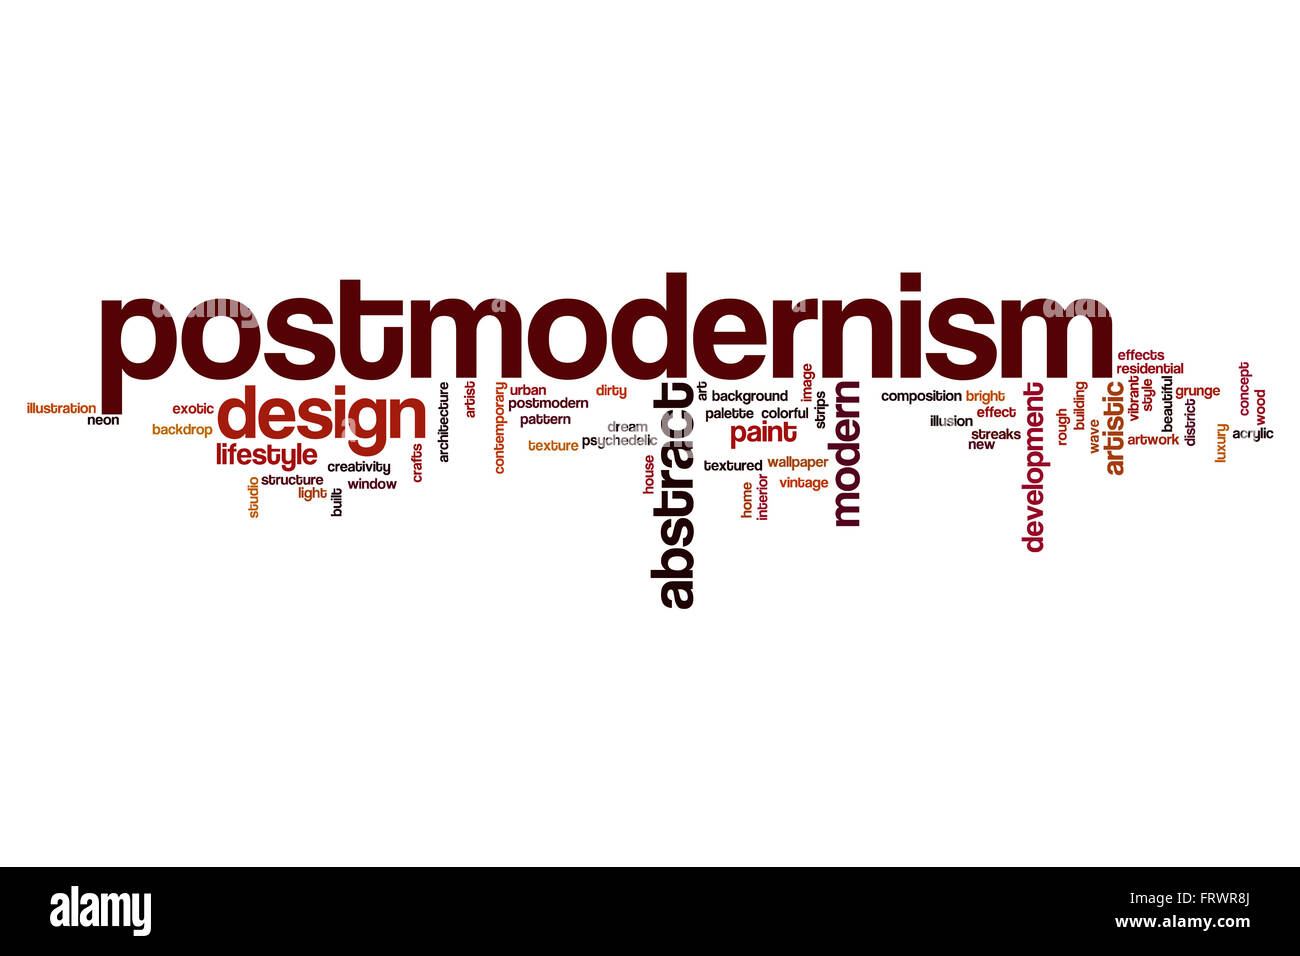 residential mobile home html with Stock Photo Postmodernism Word Cloud 100756002 on Schema Branchement Cablage Contacteur in addition Stock Photo Aerial View Above Alta Plaza Park Pacific Heights San Francisco Landscape 13246771 furthermore Jaimes R together with S les additionally Stock Photo Coastal Fishing Village In Philippines About 800000 Fishermen Use 68154209.